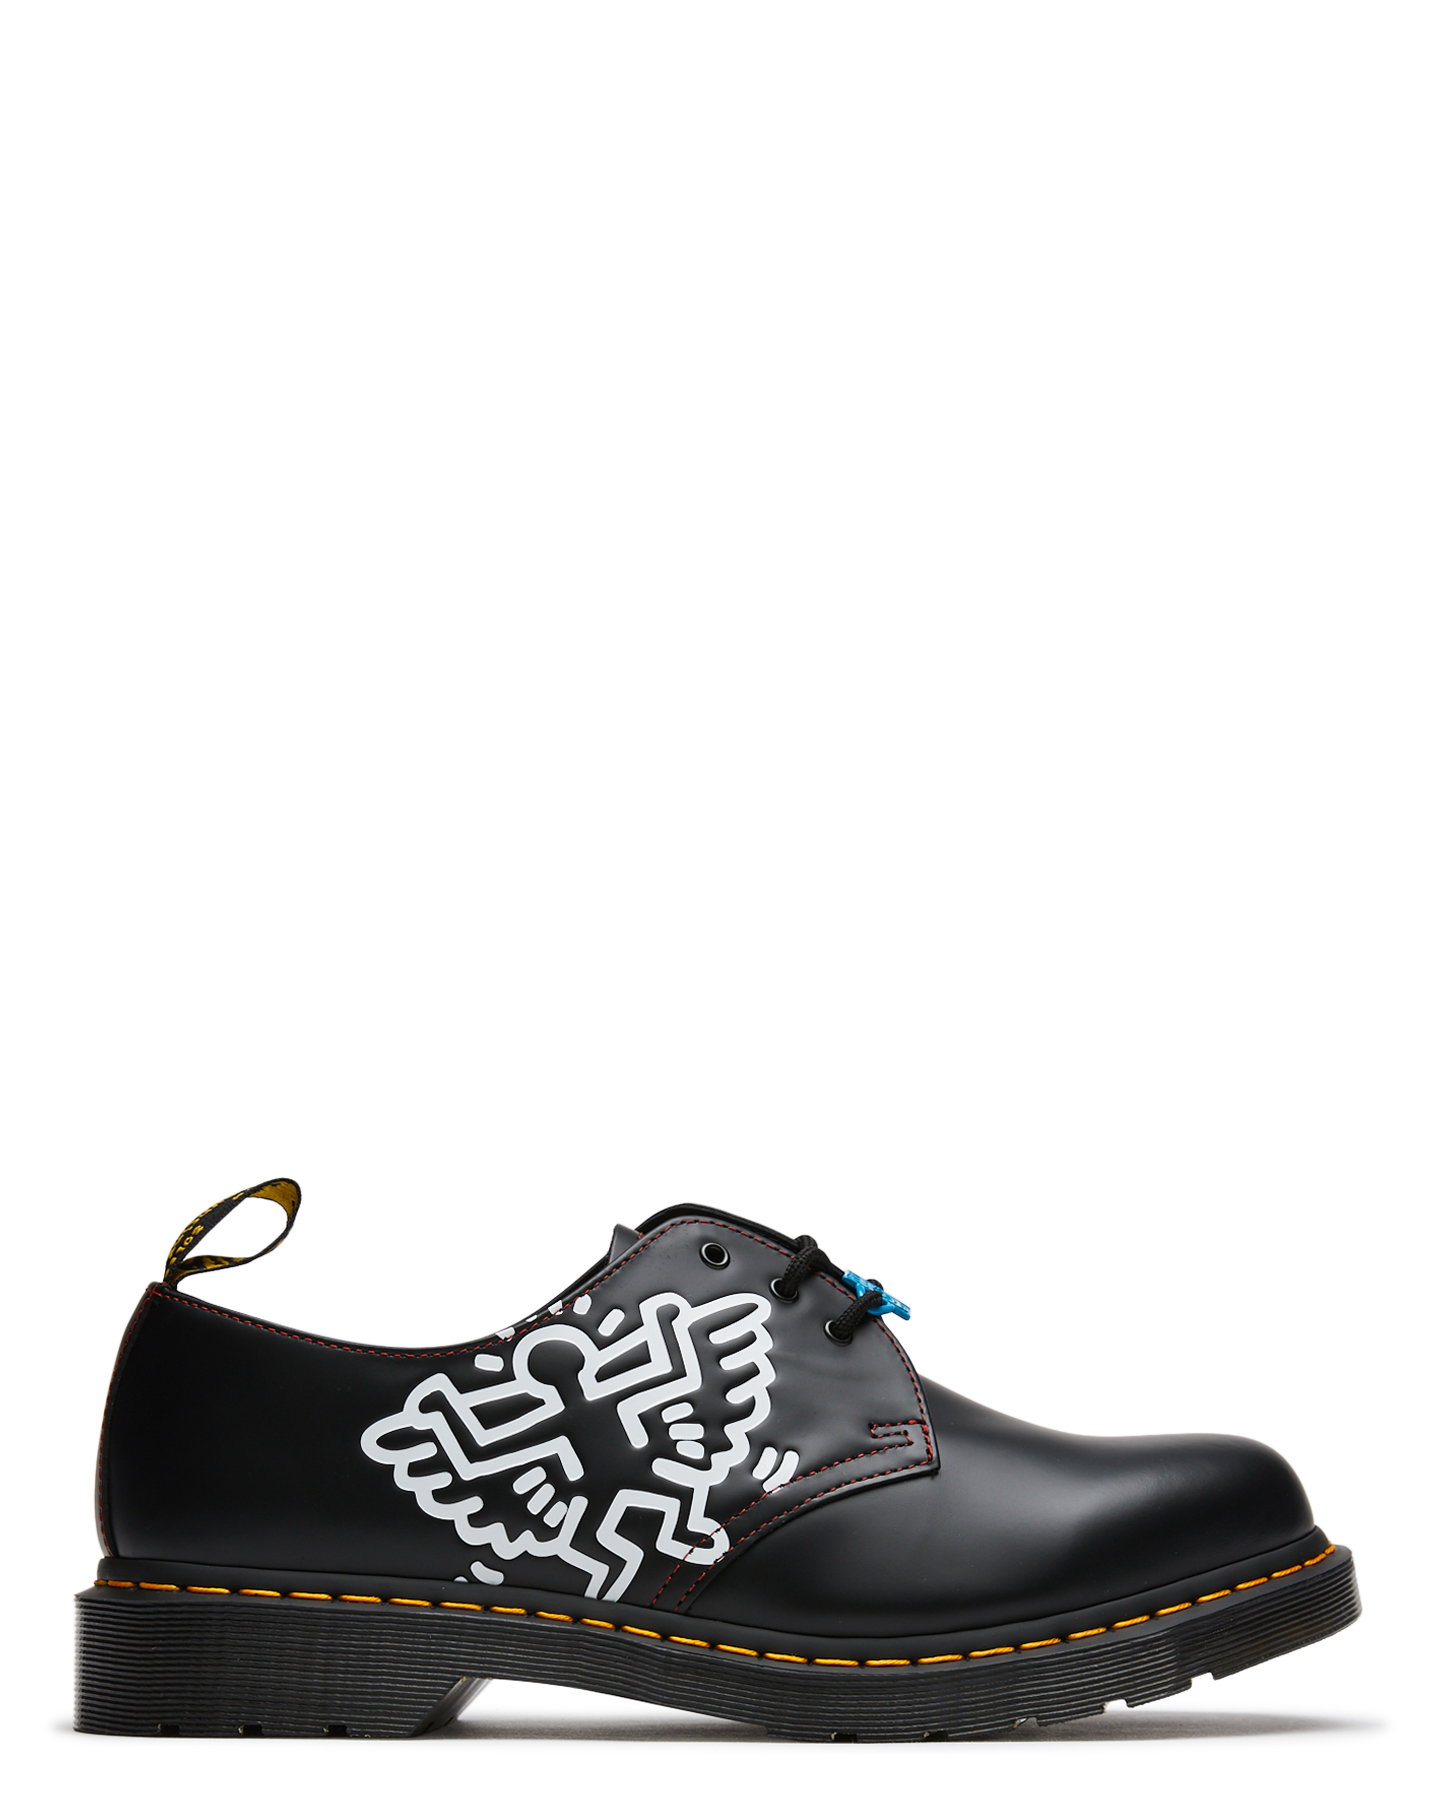 Dr. Martens Womens X Keith Haring 1461 Shoe Black